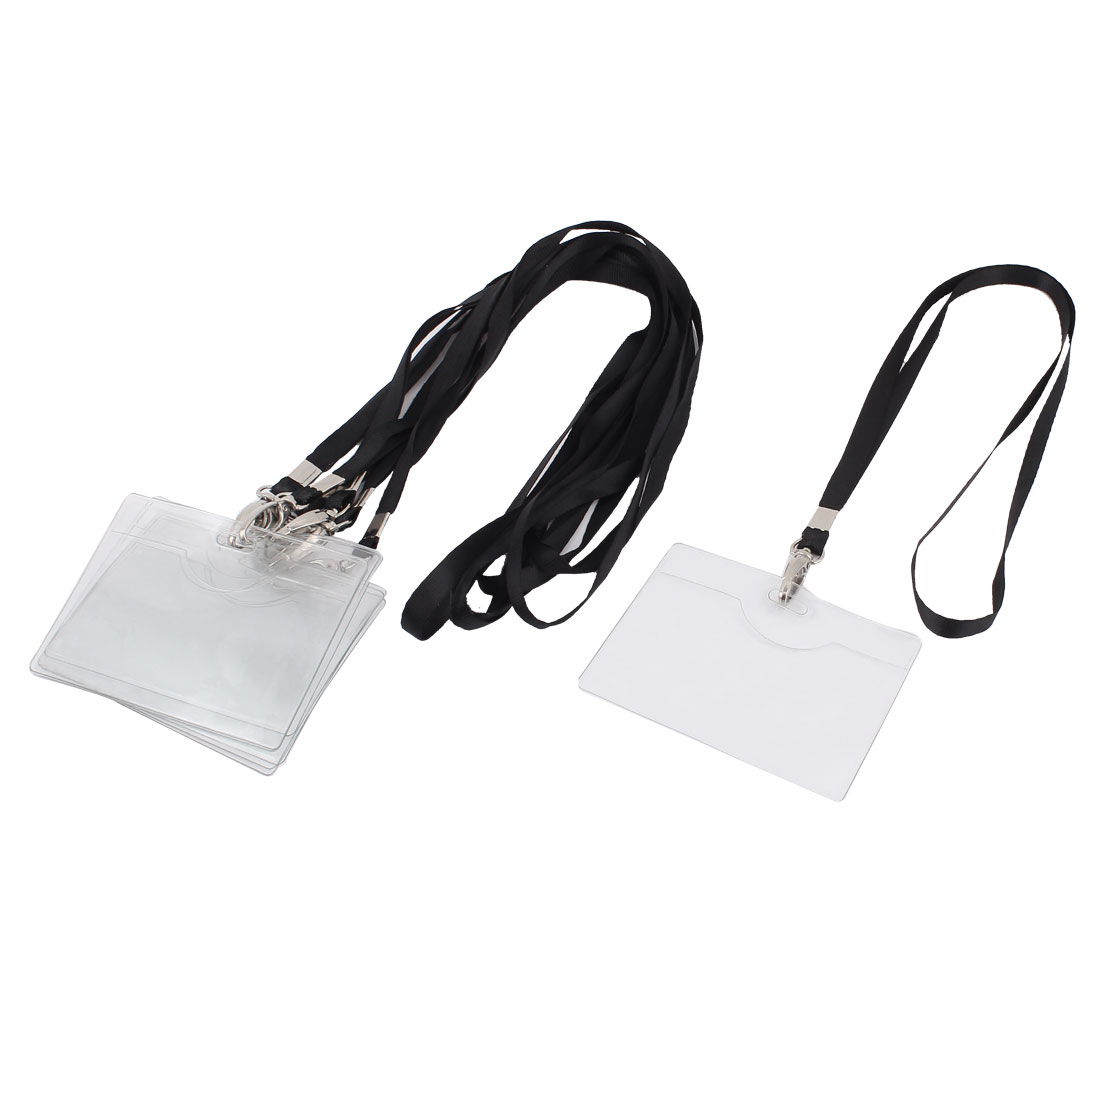 6pcs 10cmx7.5cm Clear Plastic Horizontal Design Work ID Name Card Tag Badge Holder Carrier Neck Strap